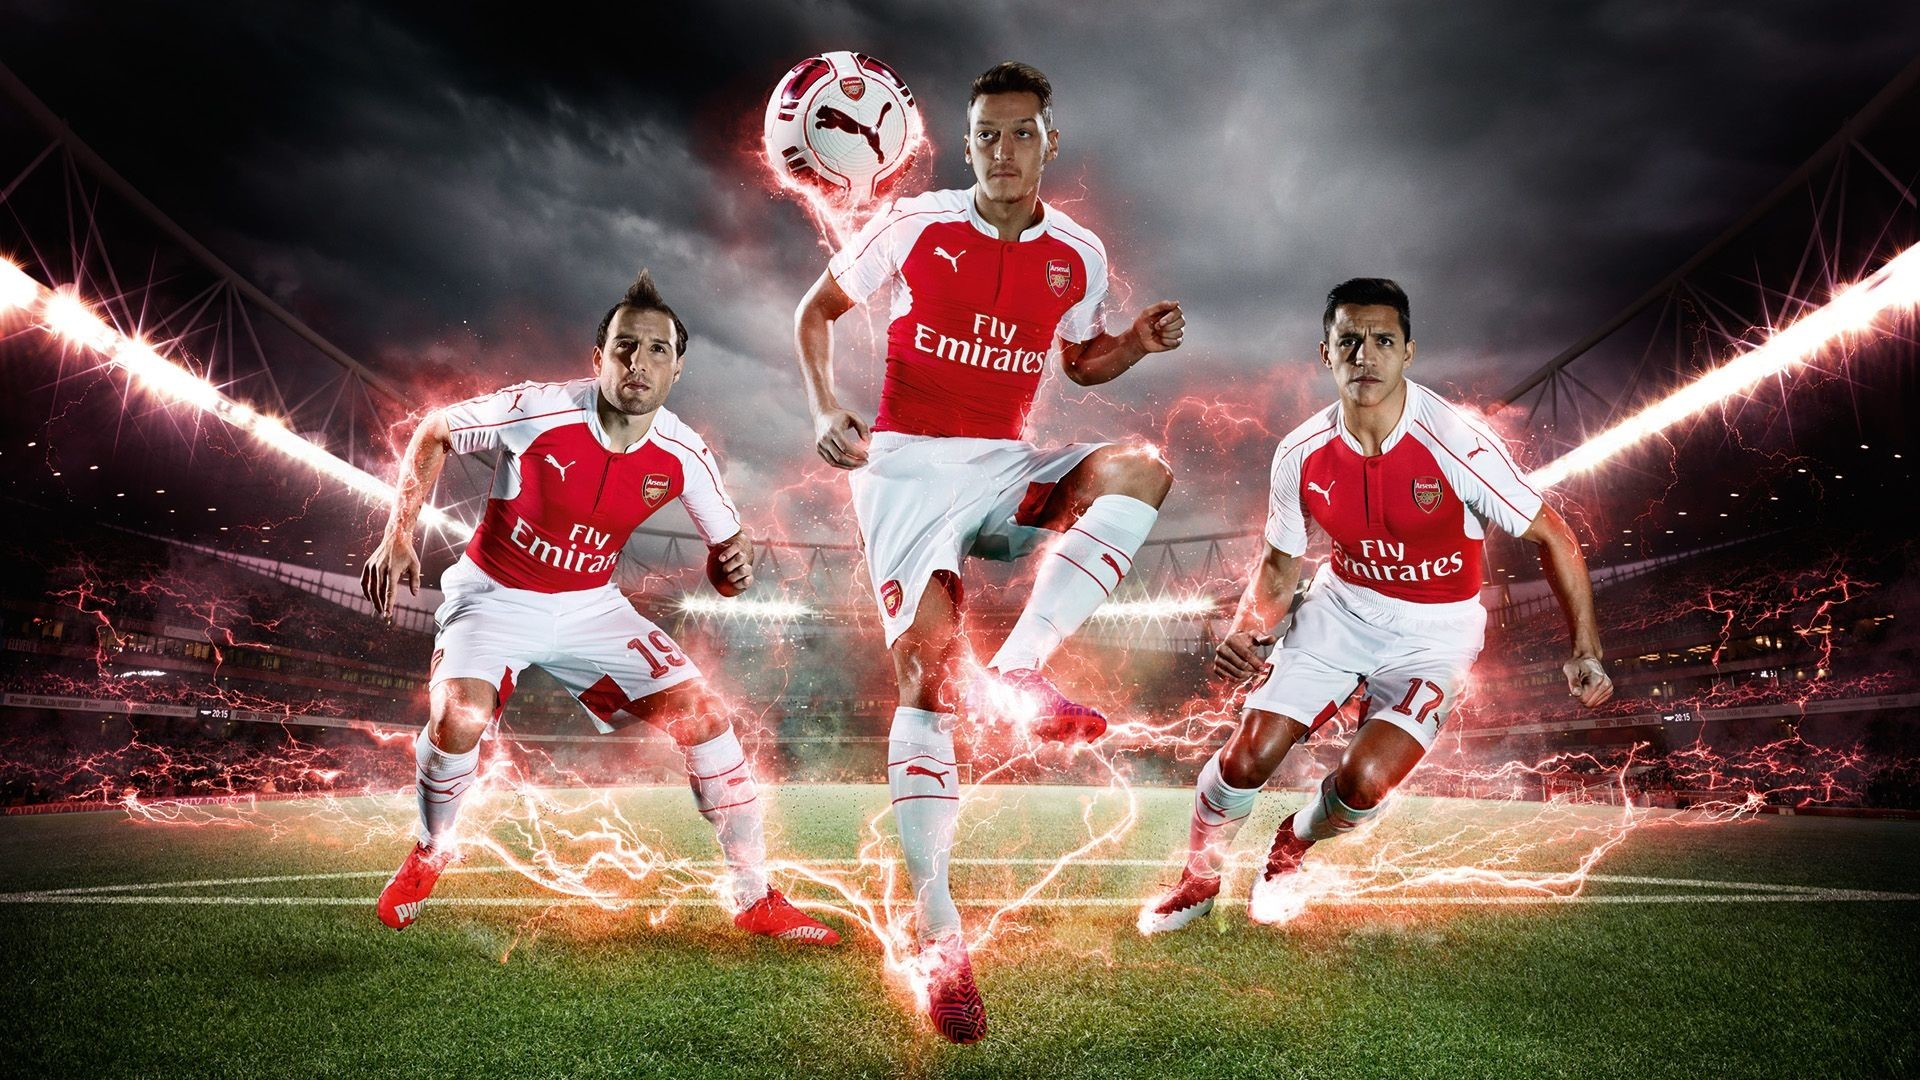 """Search Results for """"arsenal wallpaper hd – Adorable Wallpapers"""